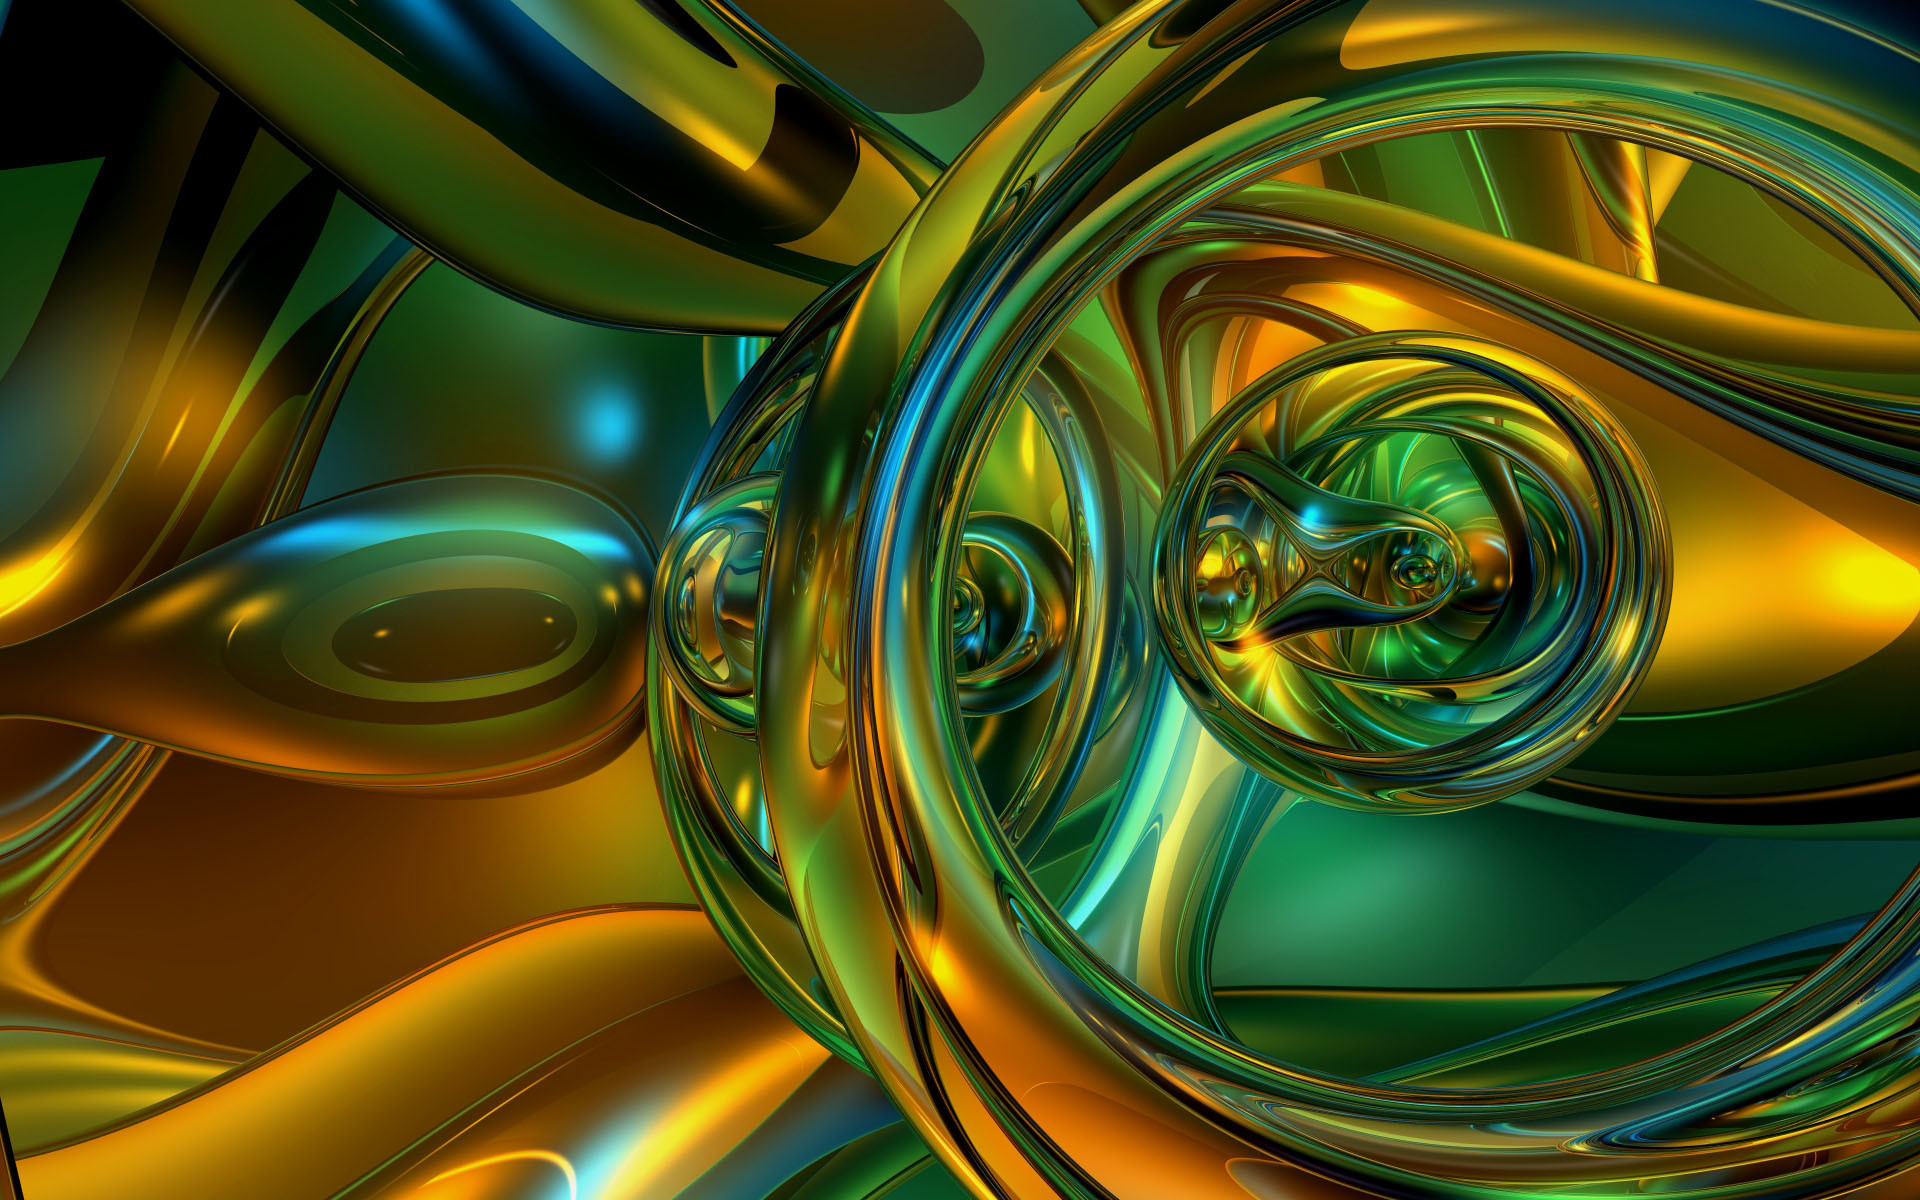 1920x1200 Download Free 3D Animated Desktop Wallpaper | Wallpapers » Abstract 3d  Wallpapers